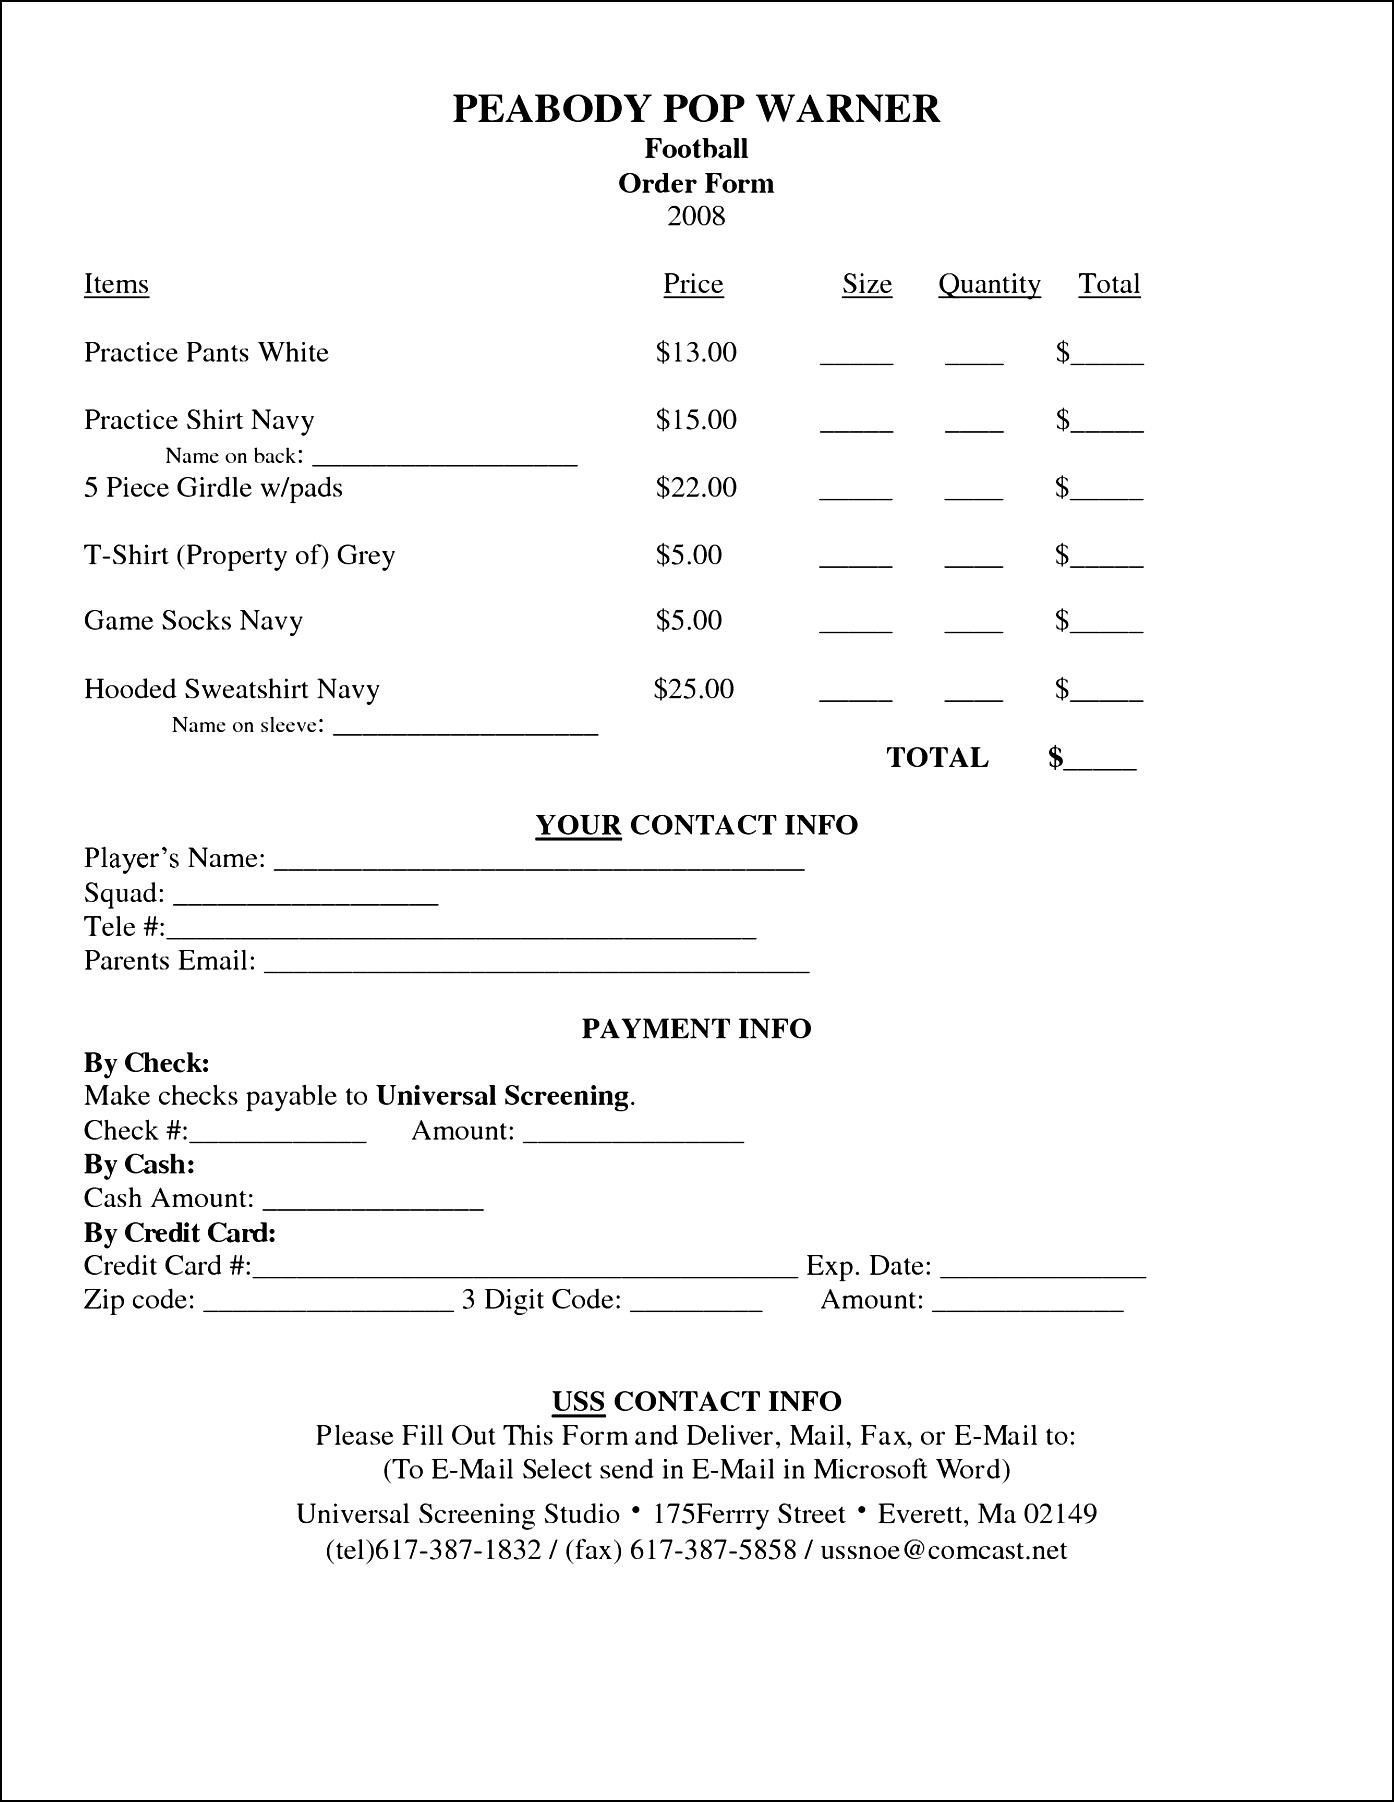 004 Incredible Free Order Form Template Word Picture  T Shirt Job Application RegistrationFull